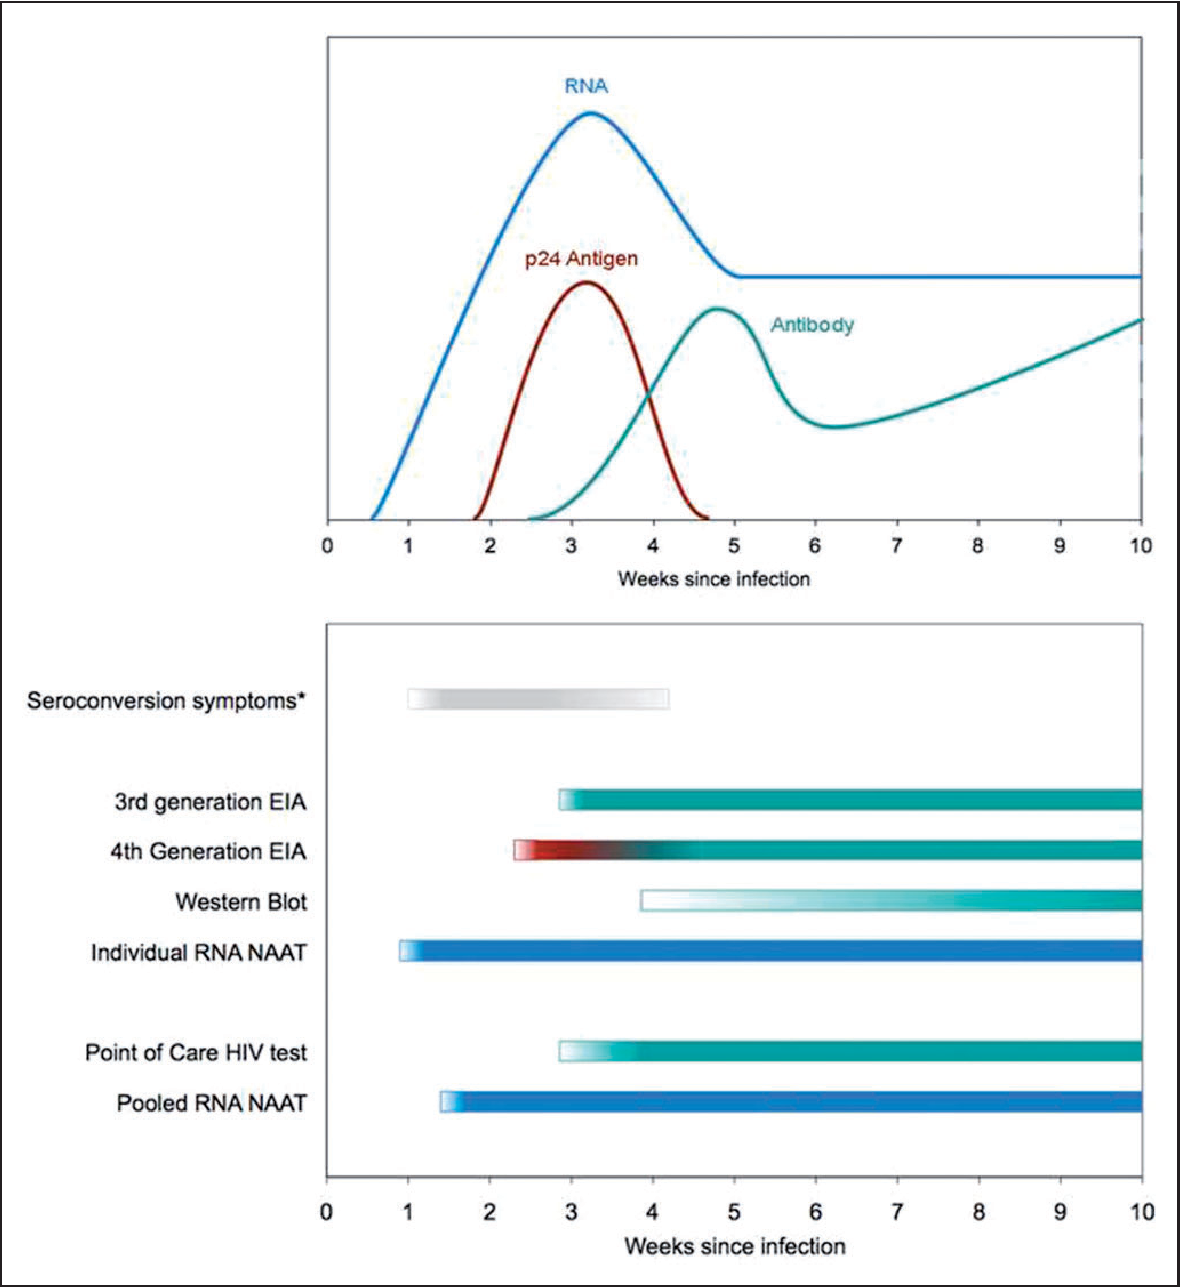 Probability of a false-negative HIV antibody test result during the